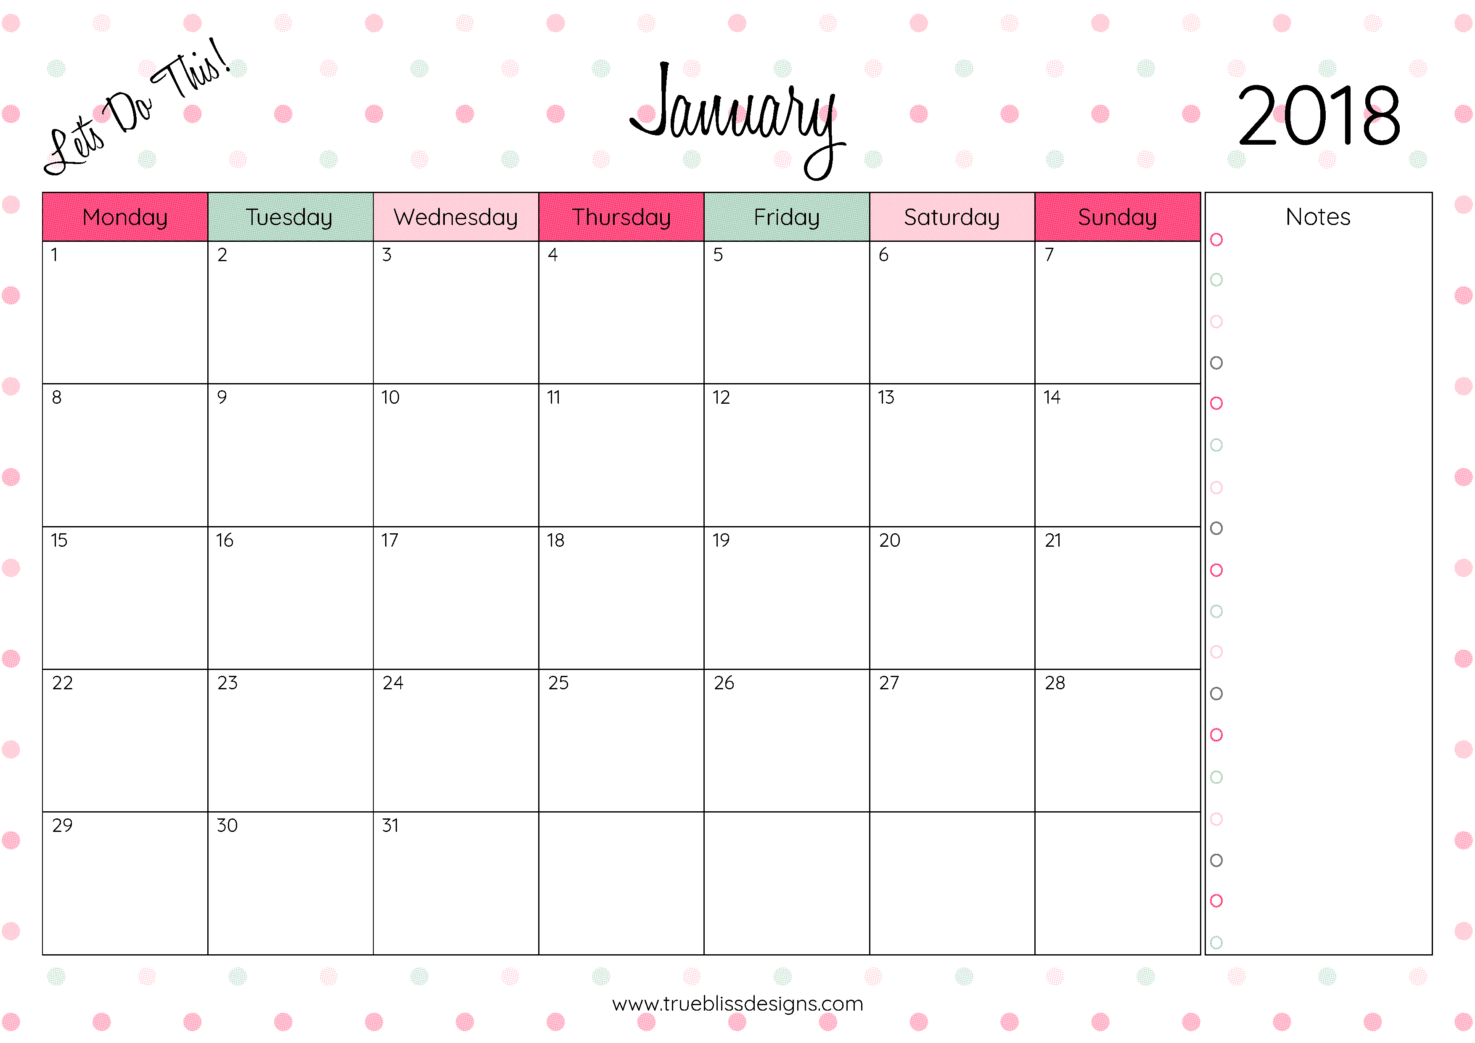 2018 Monthly Printable Calendar - Let